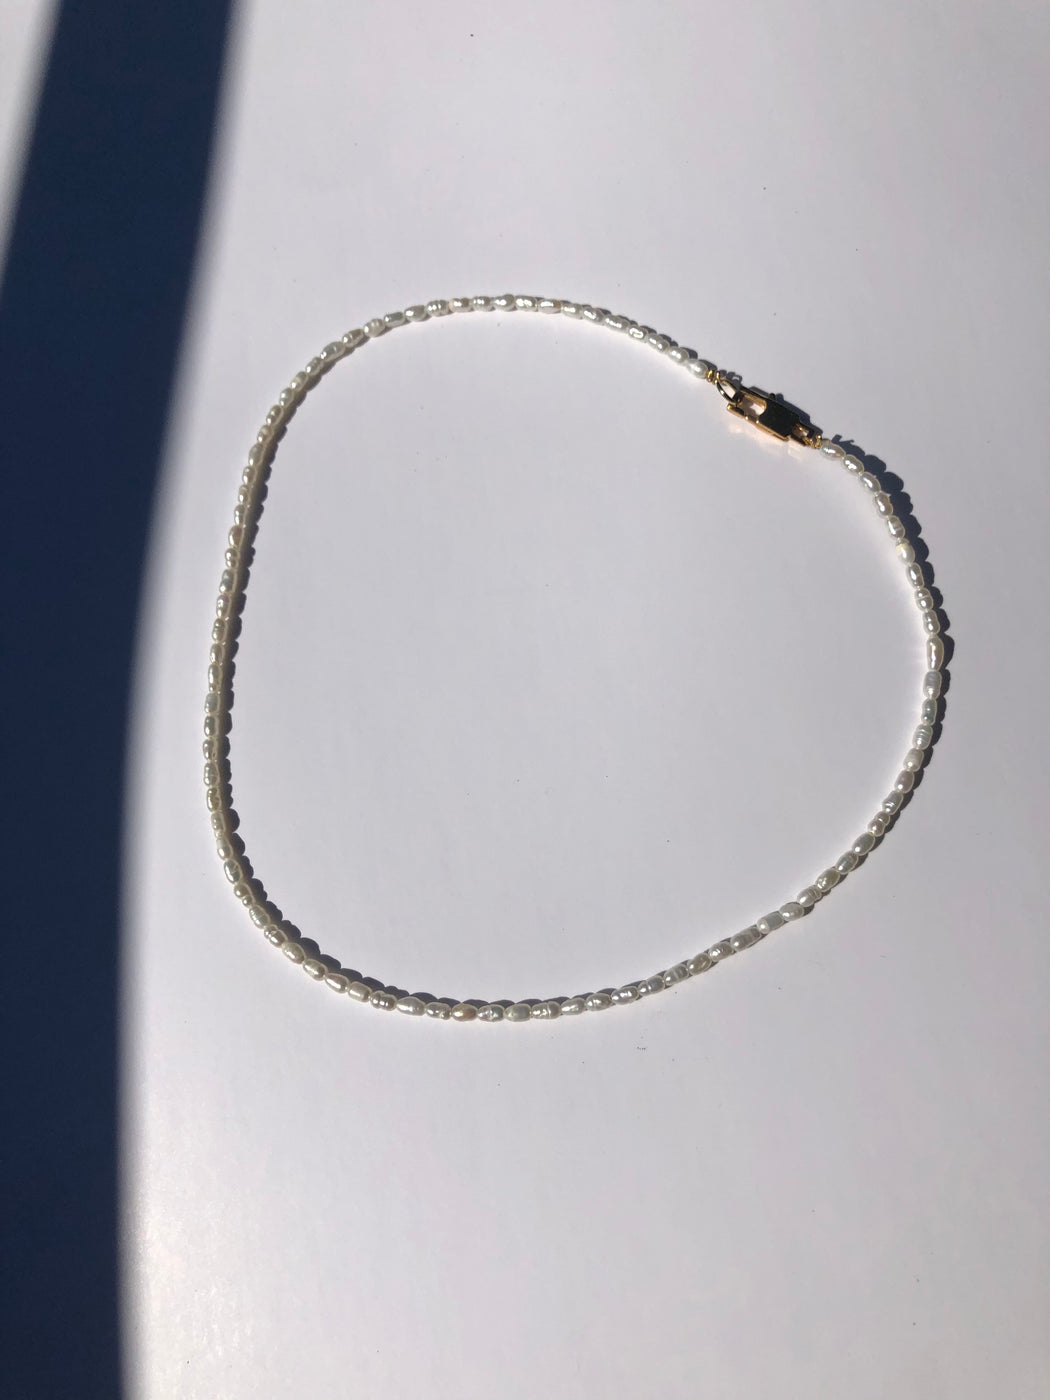 The Tiny Freshwater pearl choker